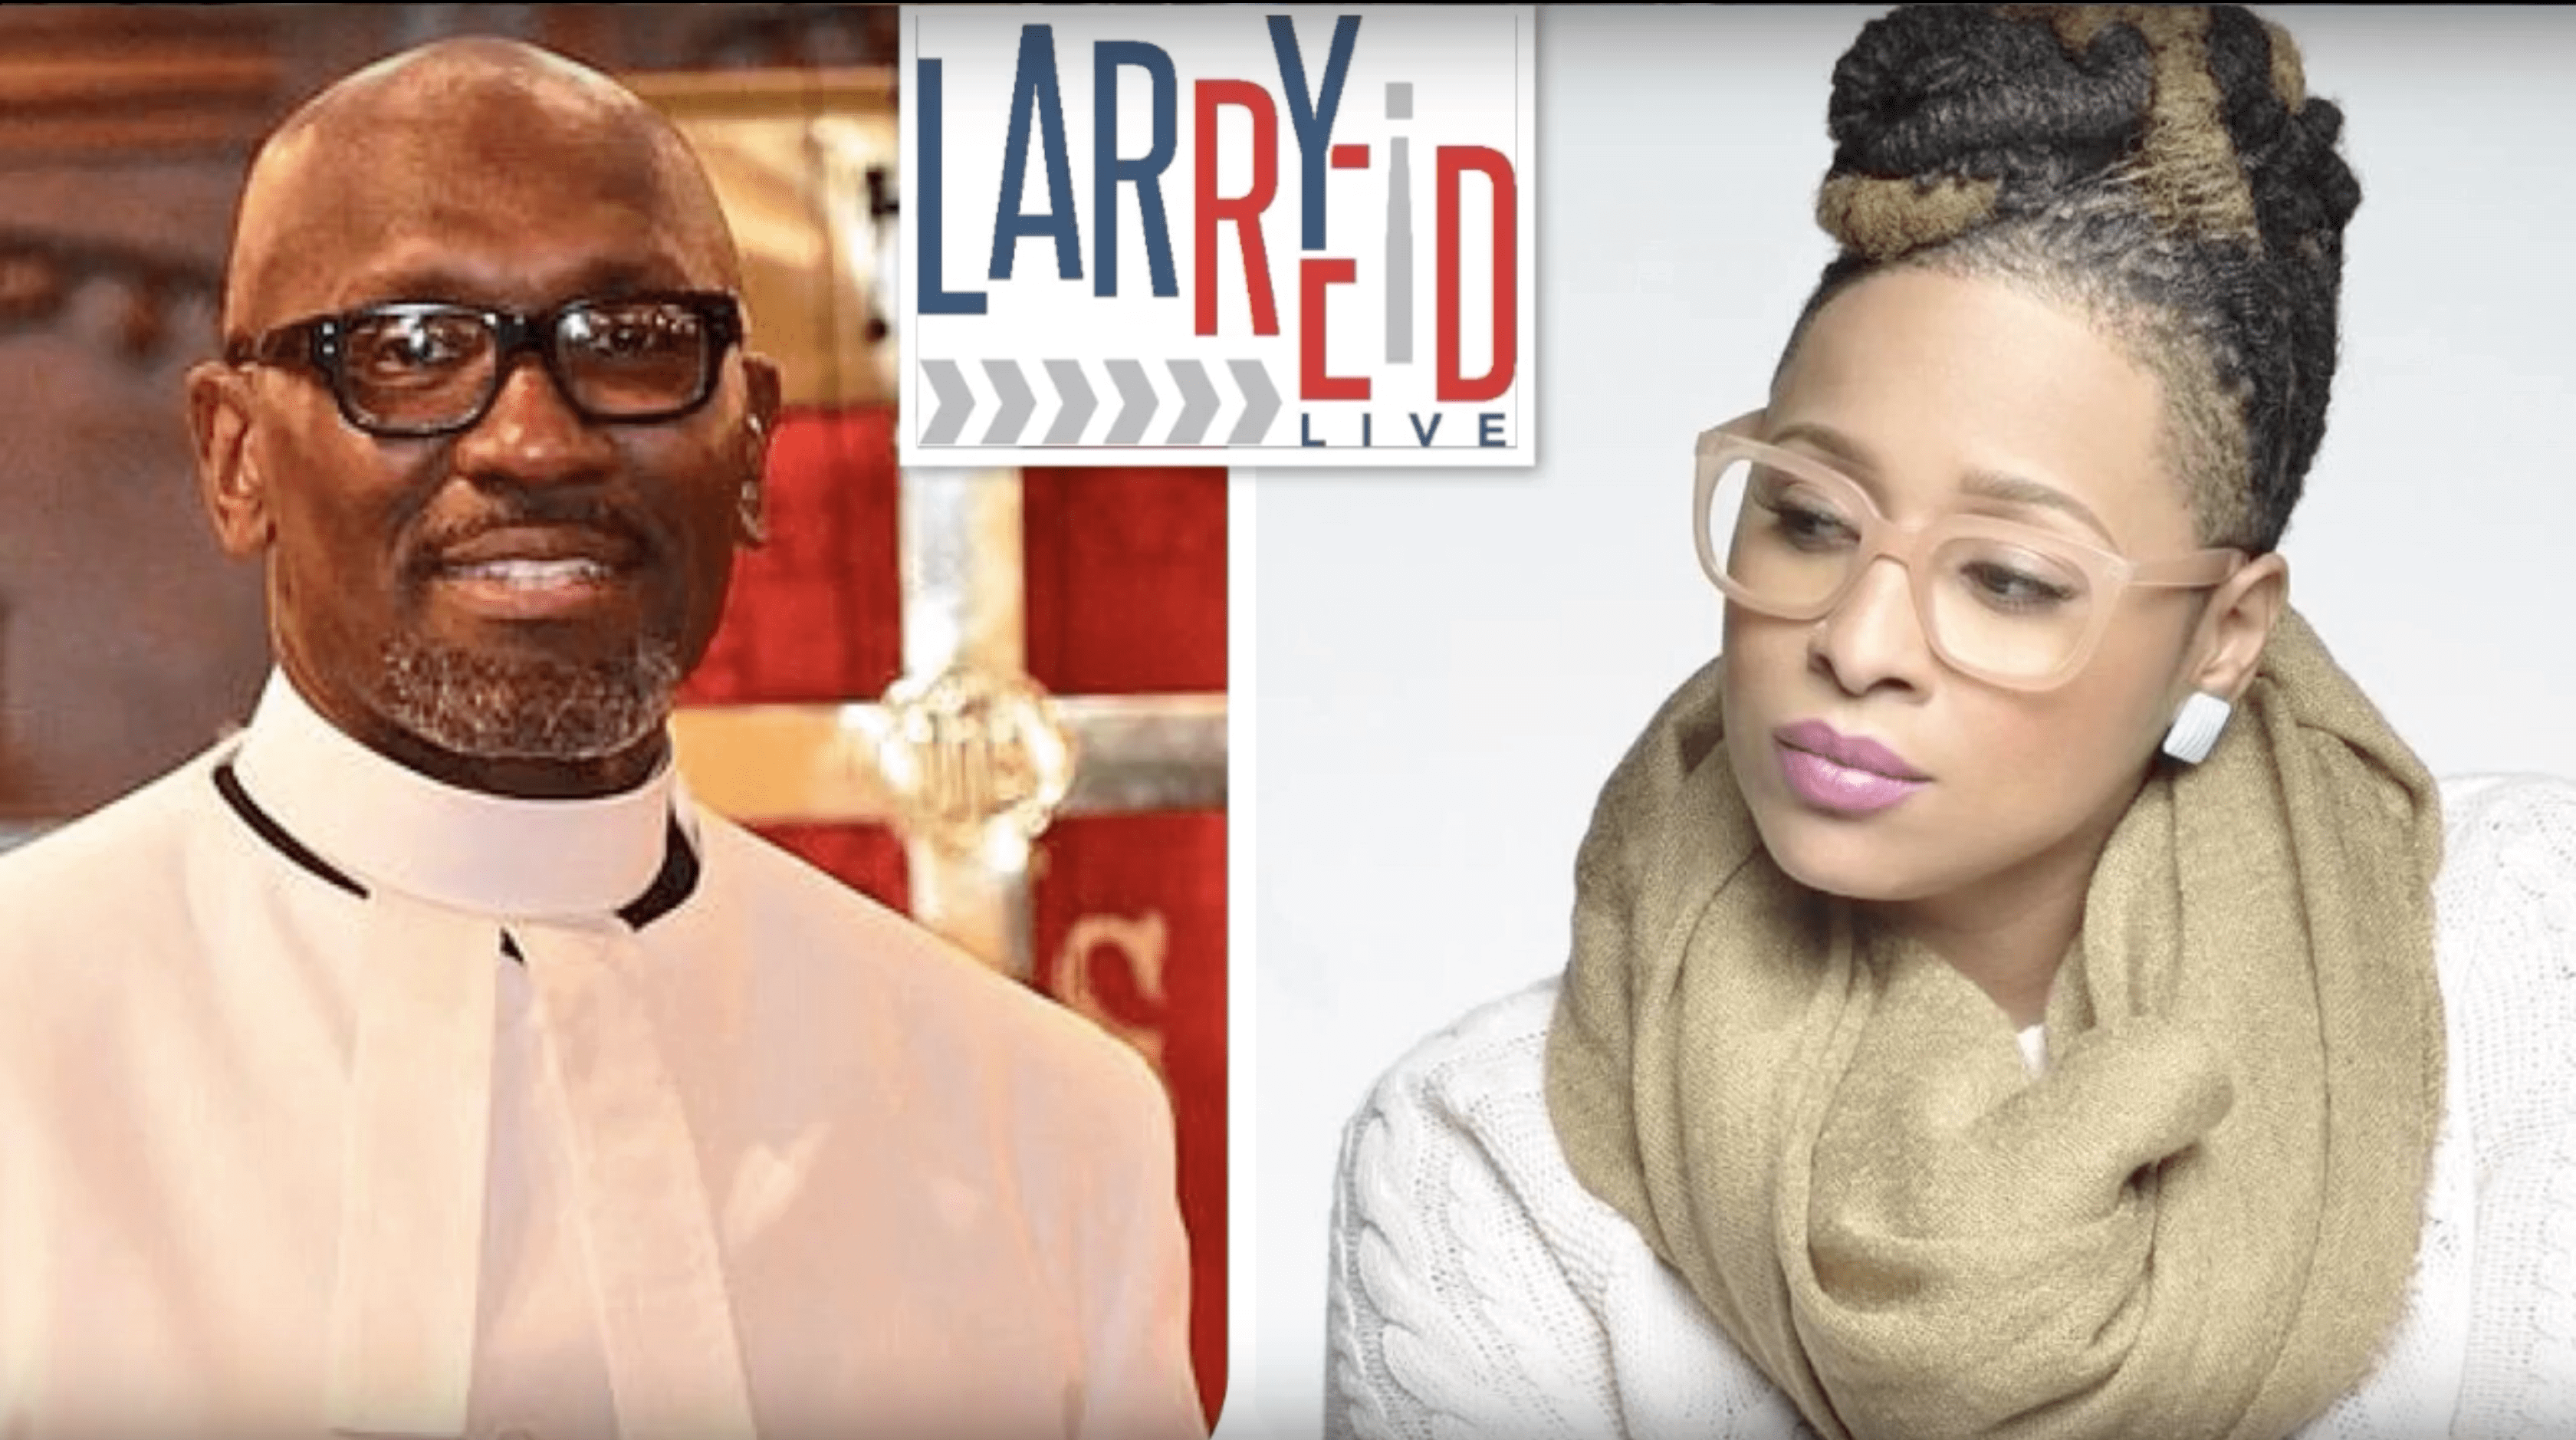 LRL 6.10.19 – Trending Topics, Church News and INTERVIEW Jennnifer Wiley vs Dr. Richard Curtis Chapple